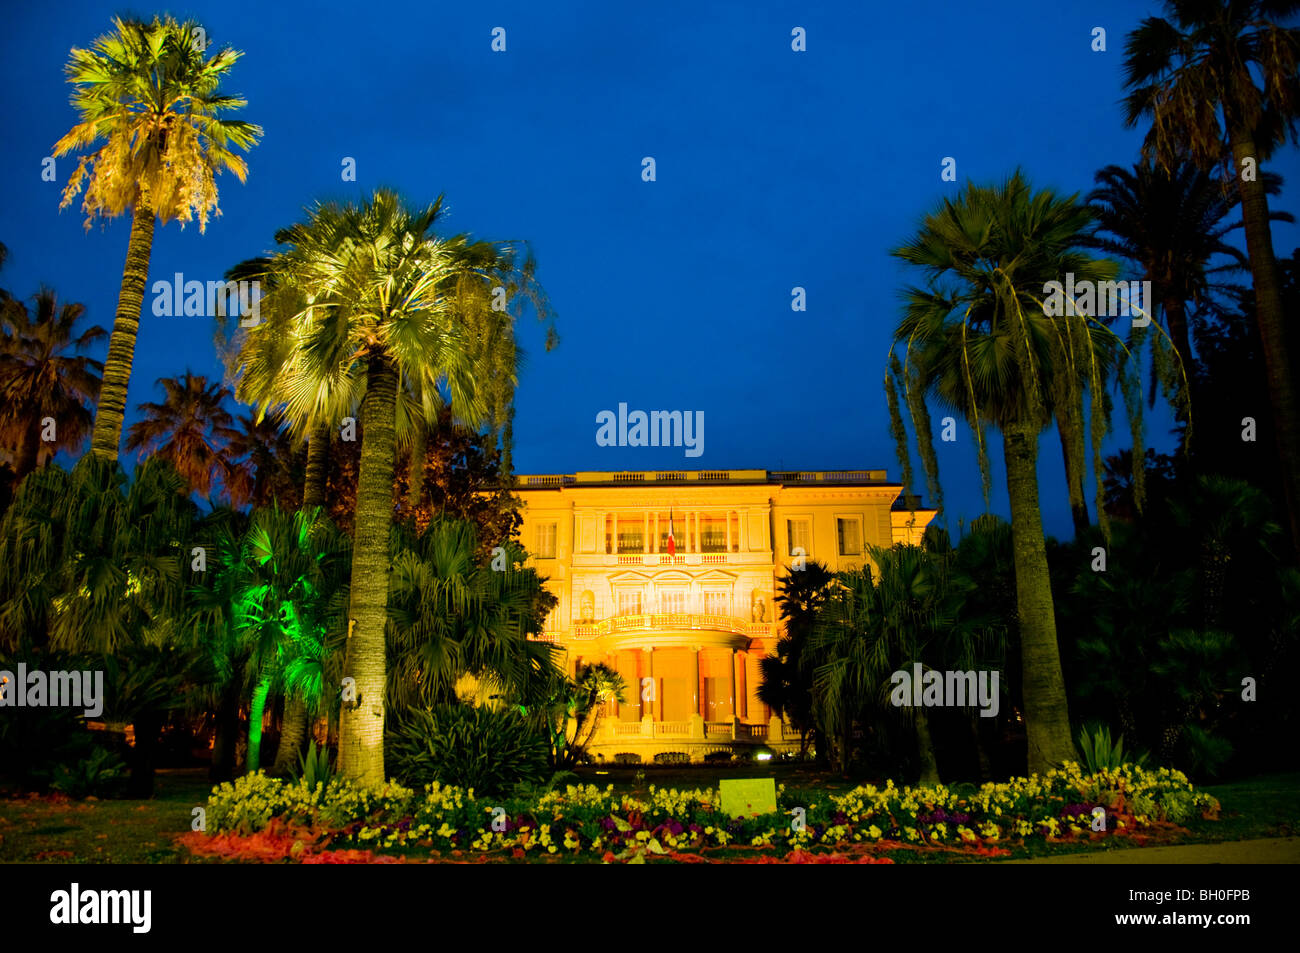 palm trees lit up at night stock photos palm trees lit up at night